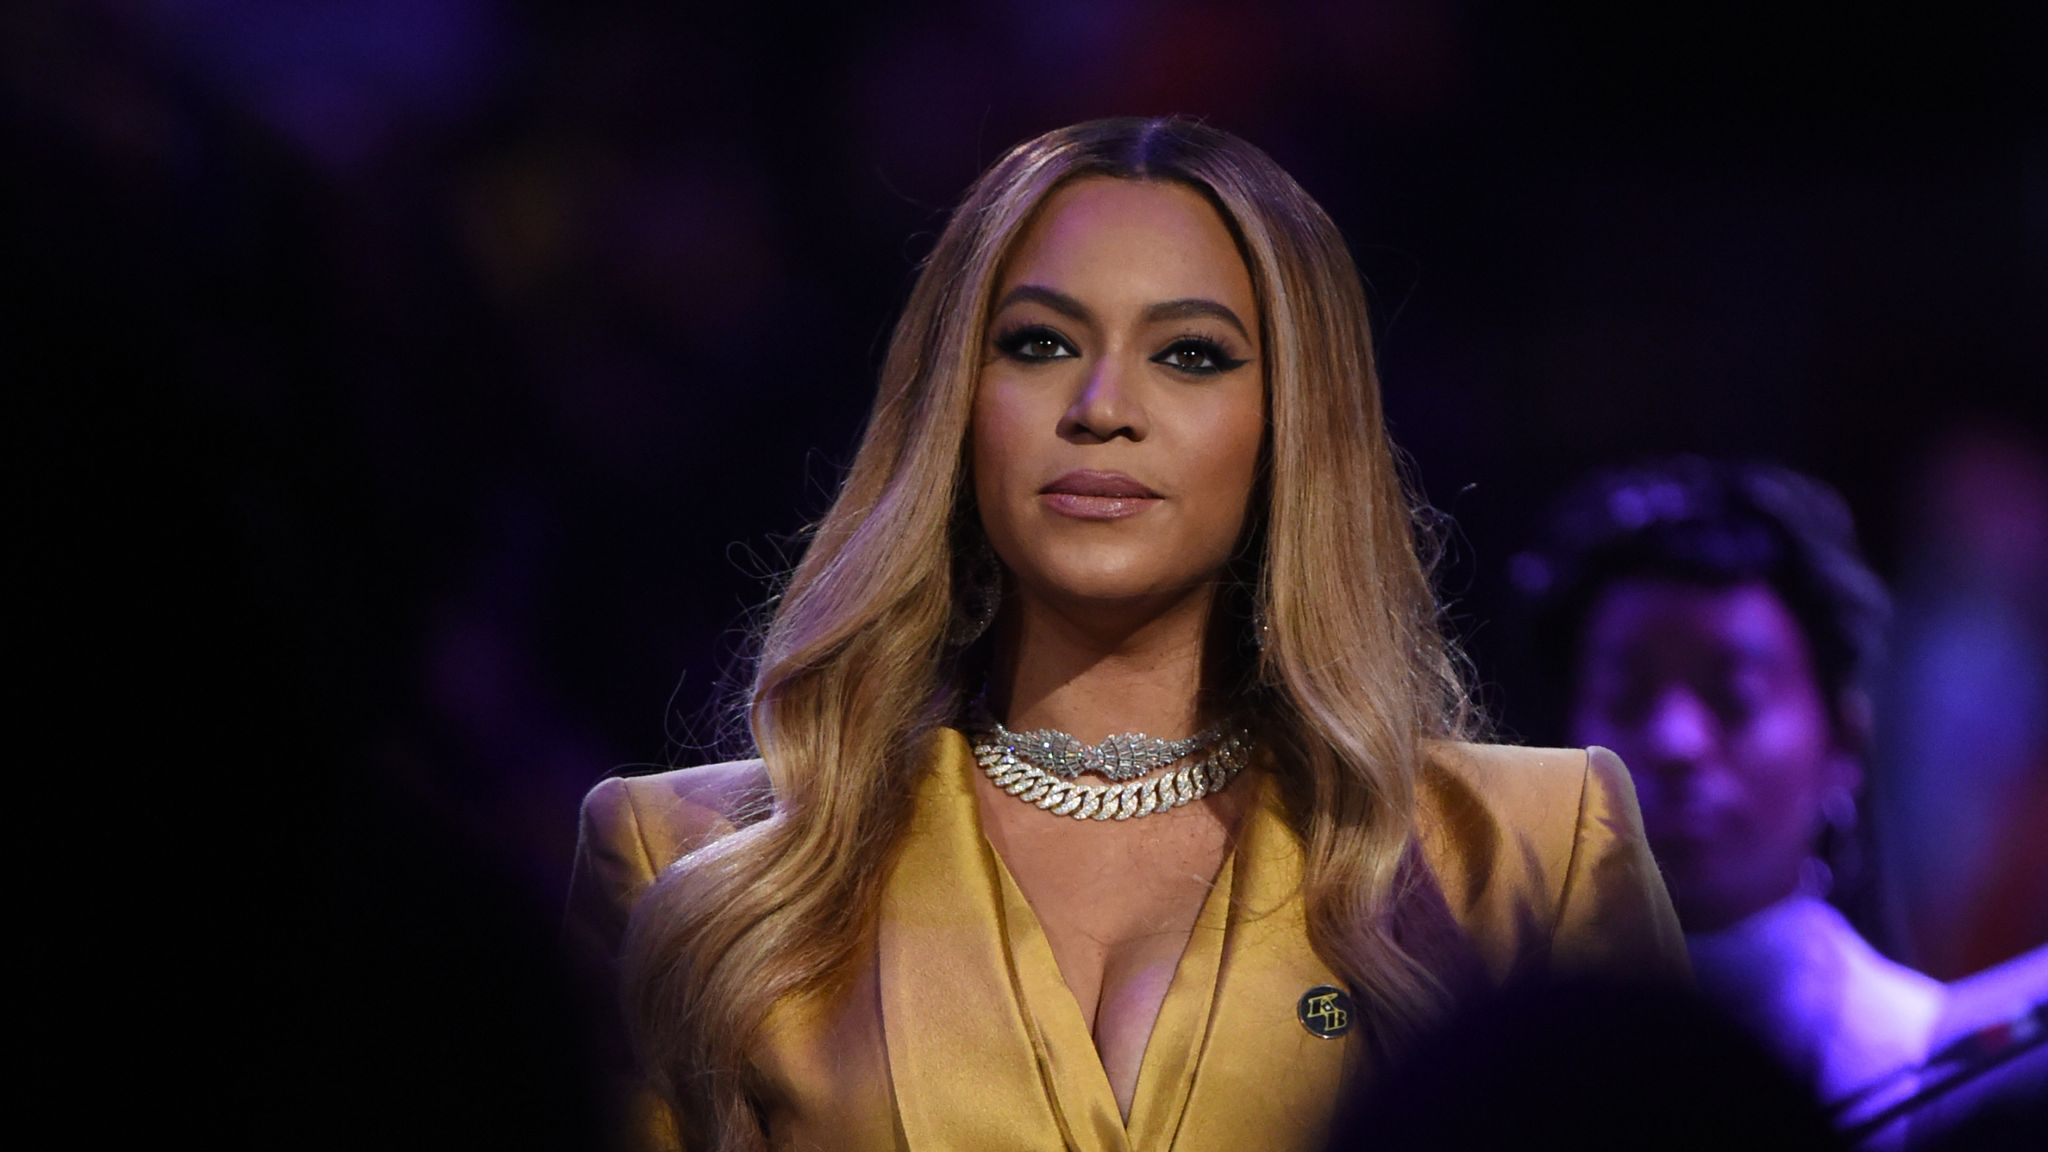 Halo Beyonce Lyrics, Husband, Height and Everything You Need to Know